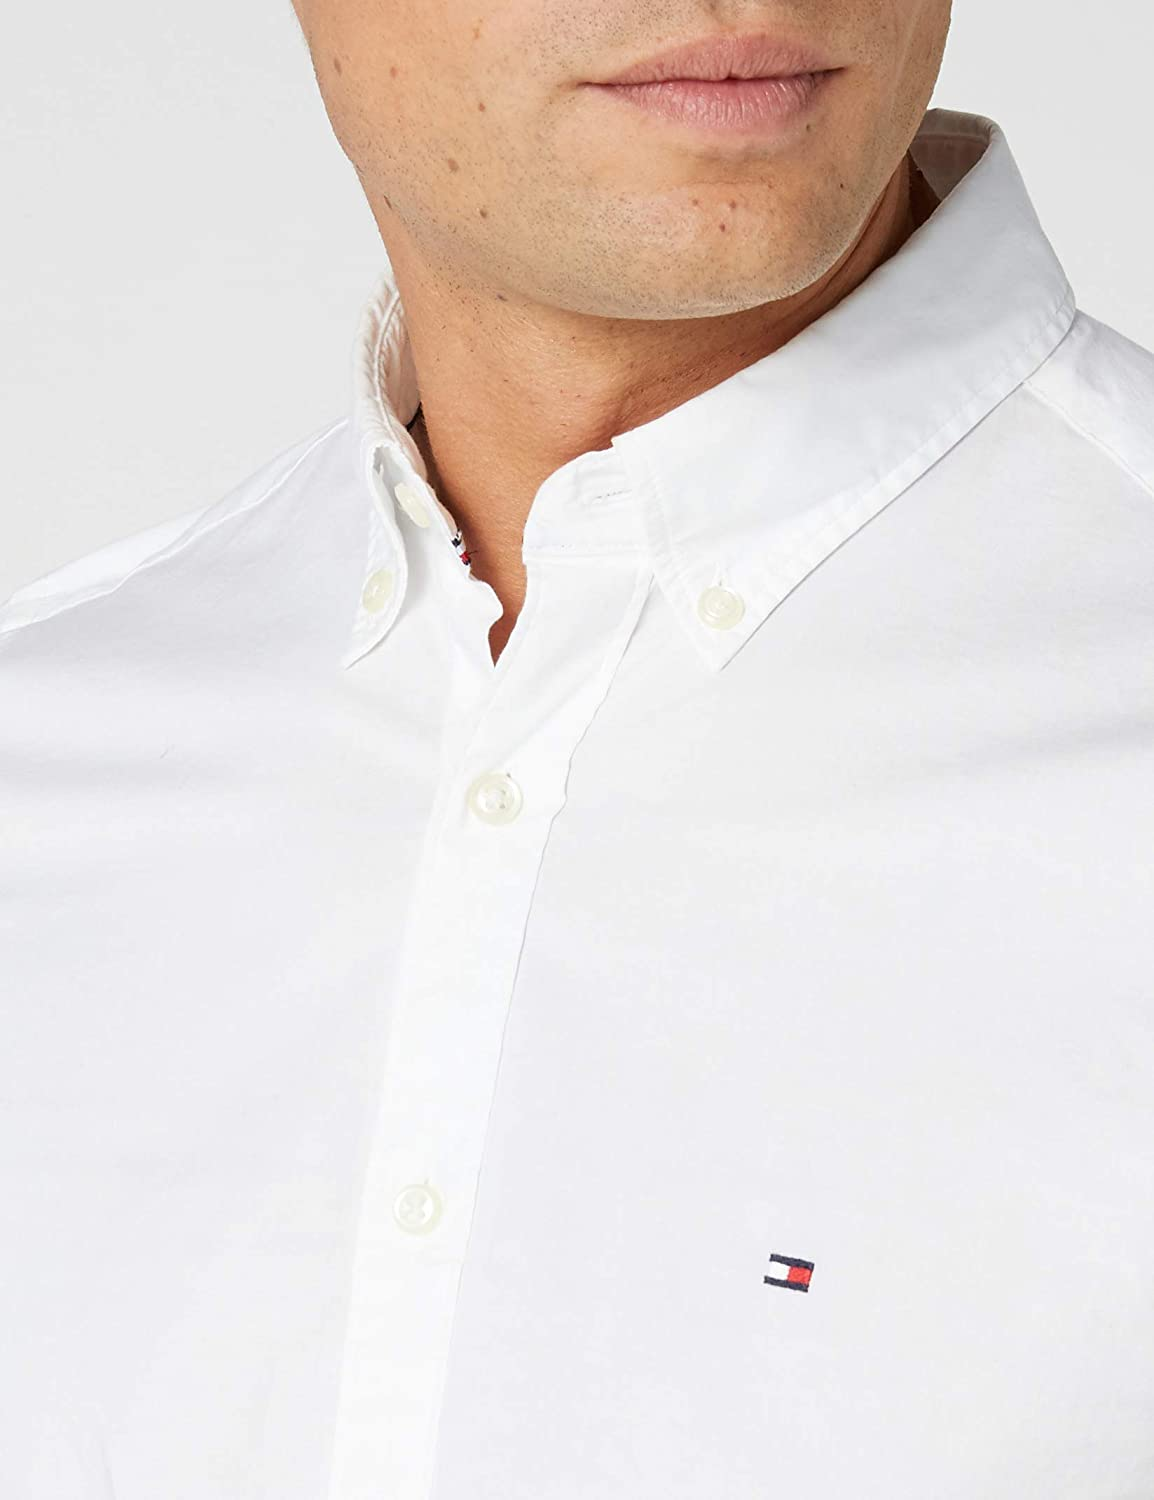 Tommy Hilfiger 867894704403 Chemise business Col classique Homme Manches longues Taille normale